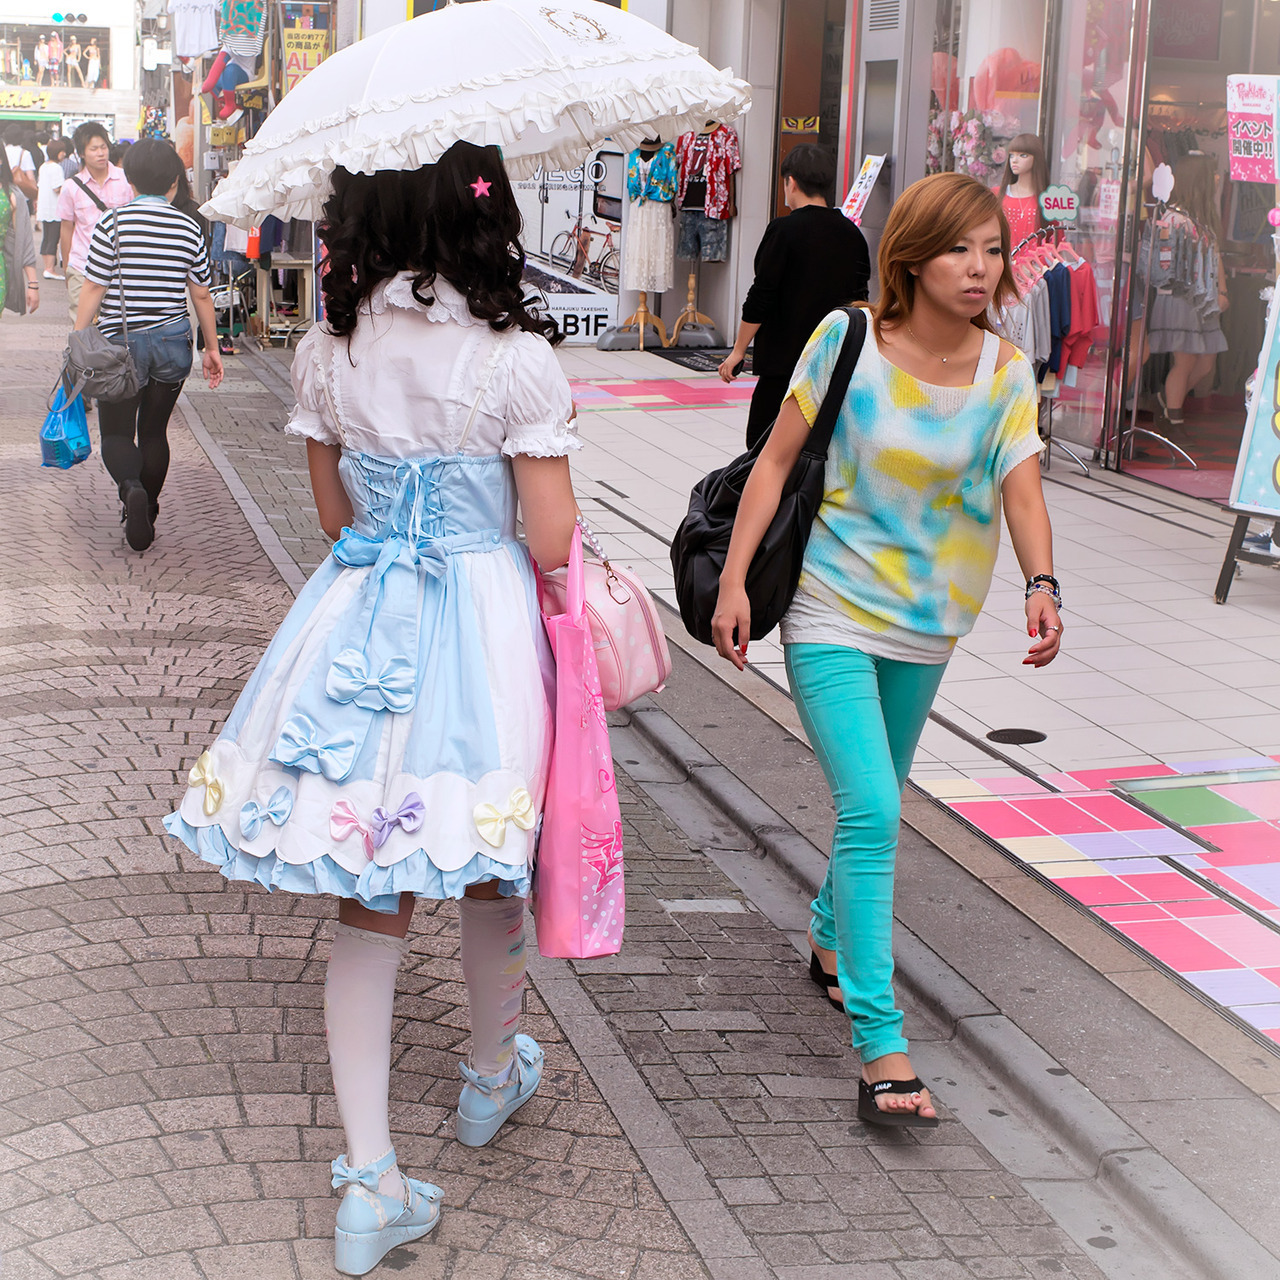 Lolita w/ Angelic Pretty parasol on Takeshita Dori in Harajuku.